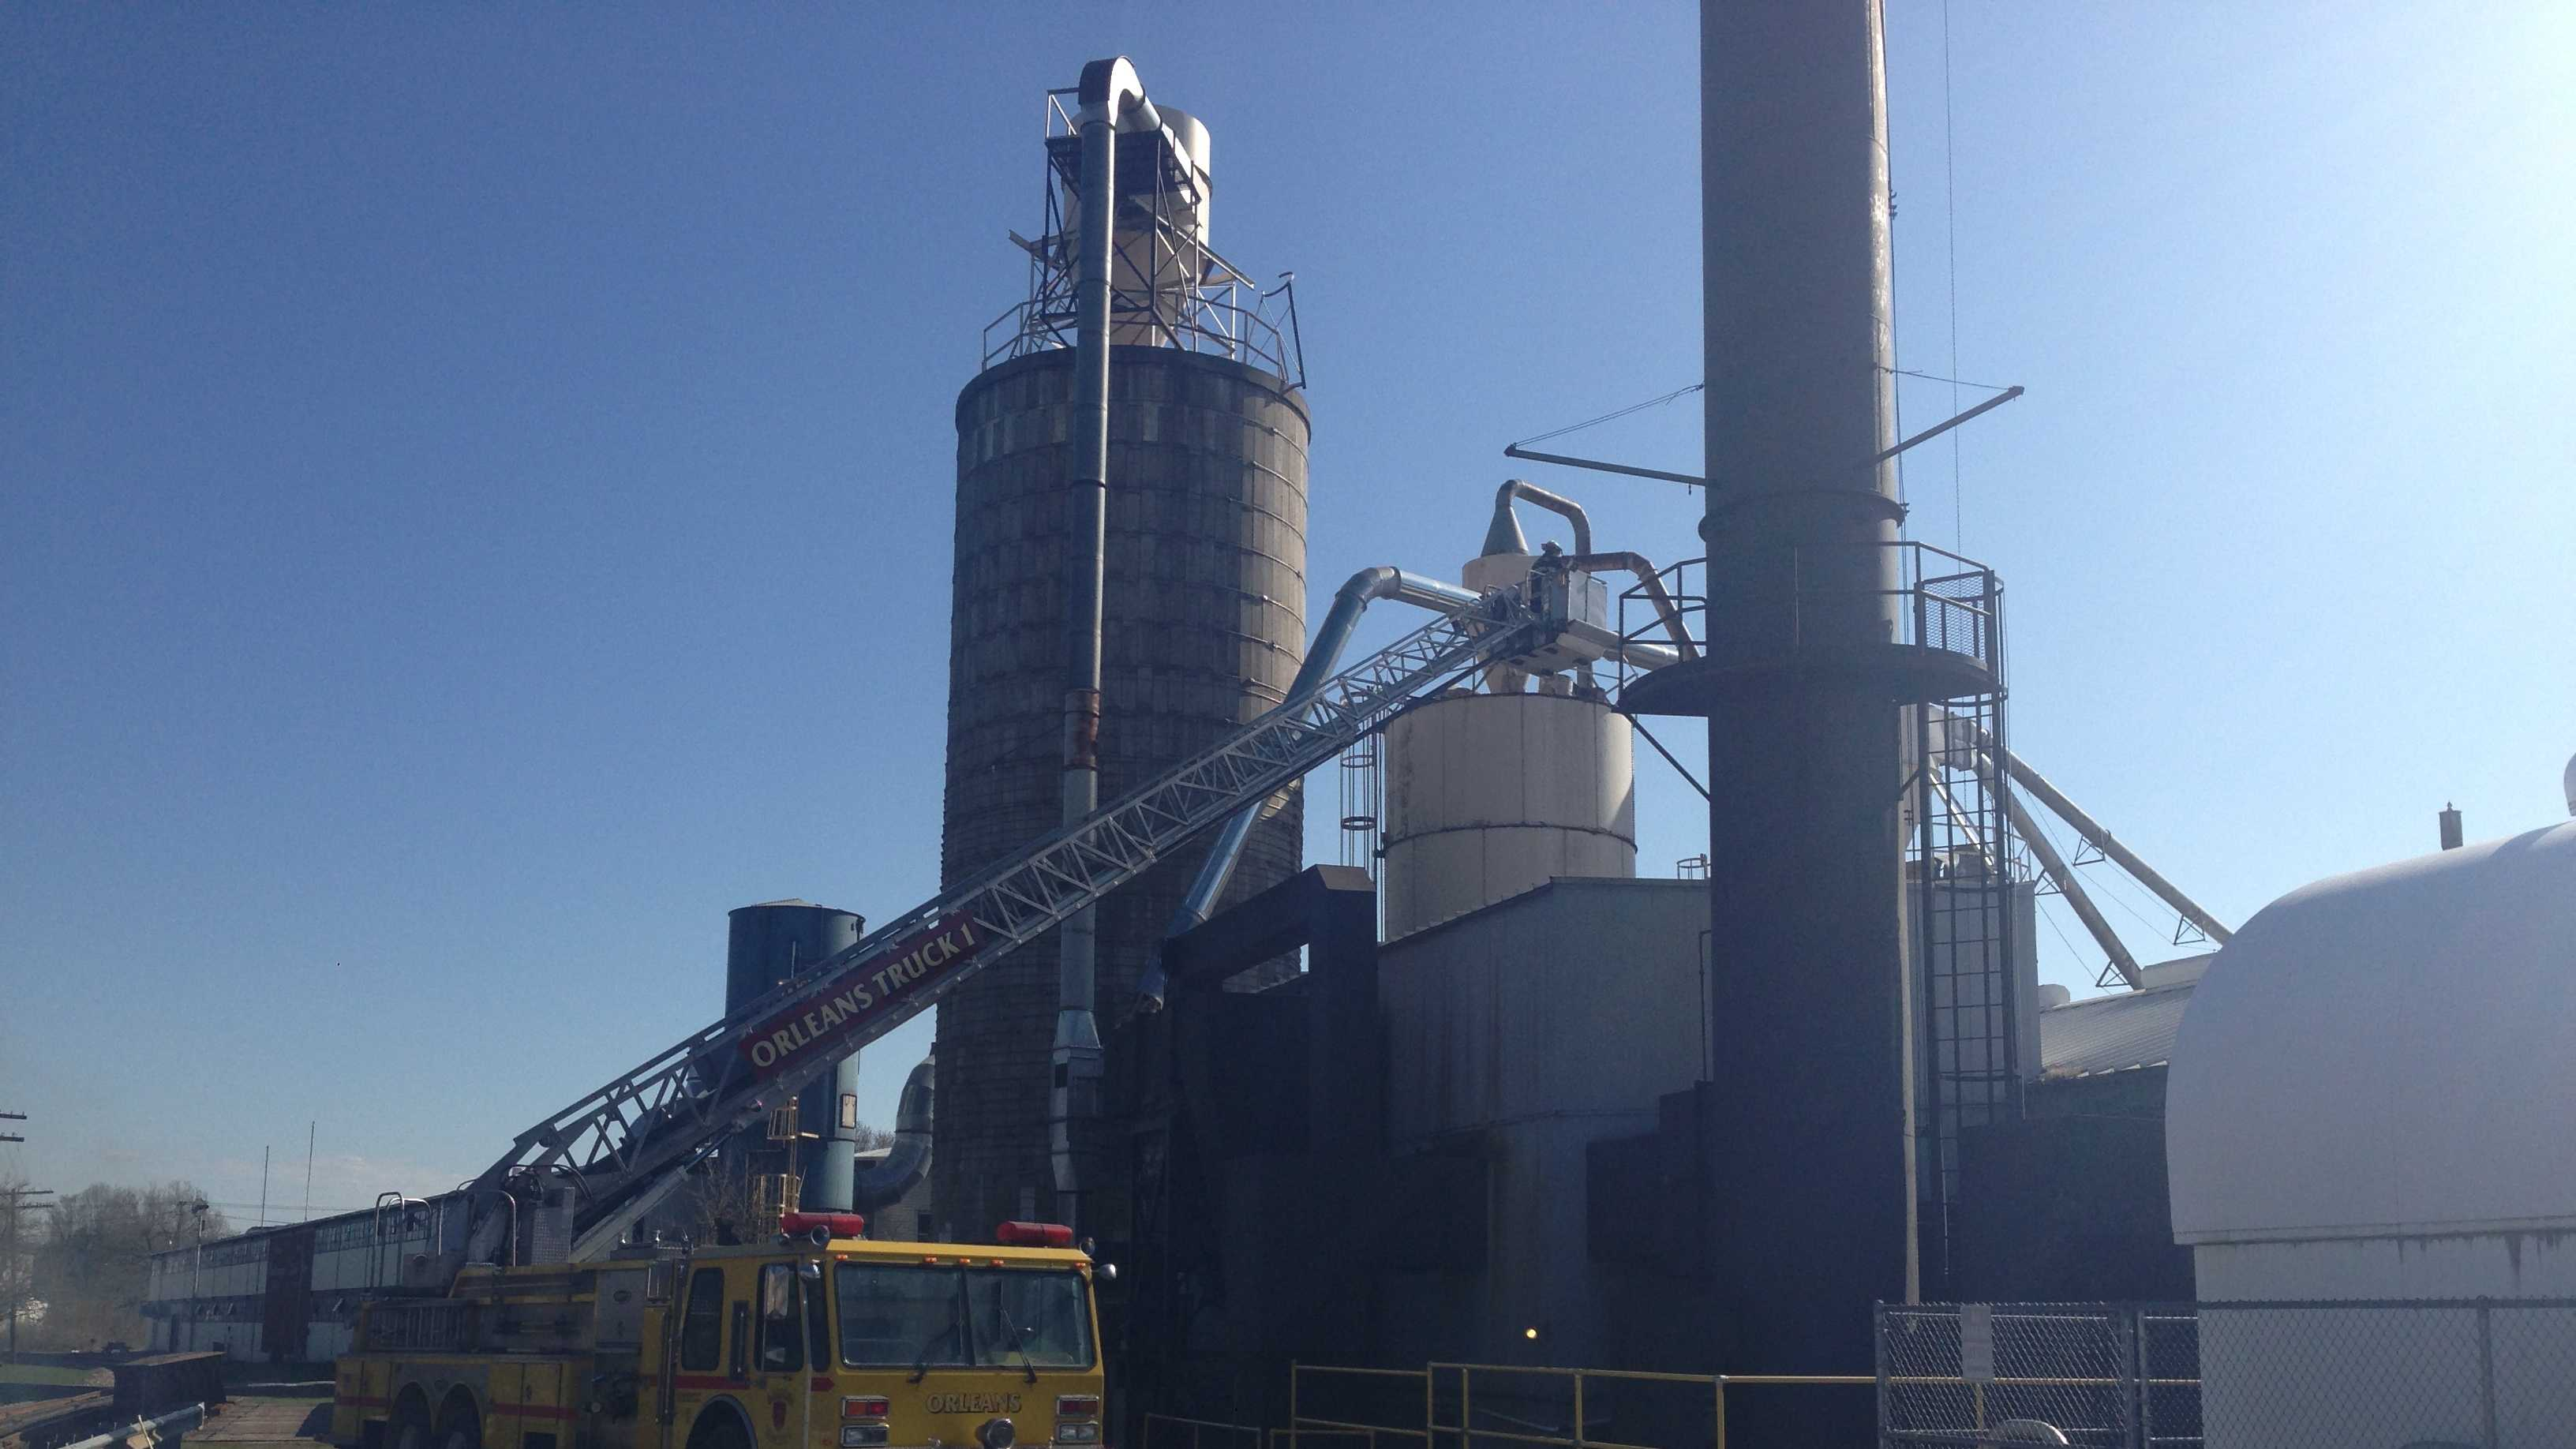 About 400 employees at Vermont's Ethan Allen plant have the day off after a fire damaged two sawdust silos at the furniture manufacturer.